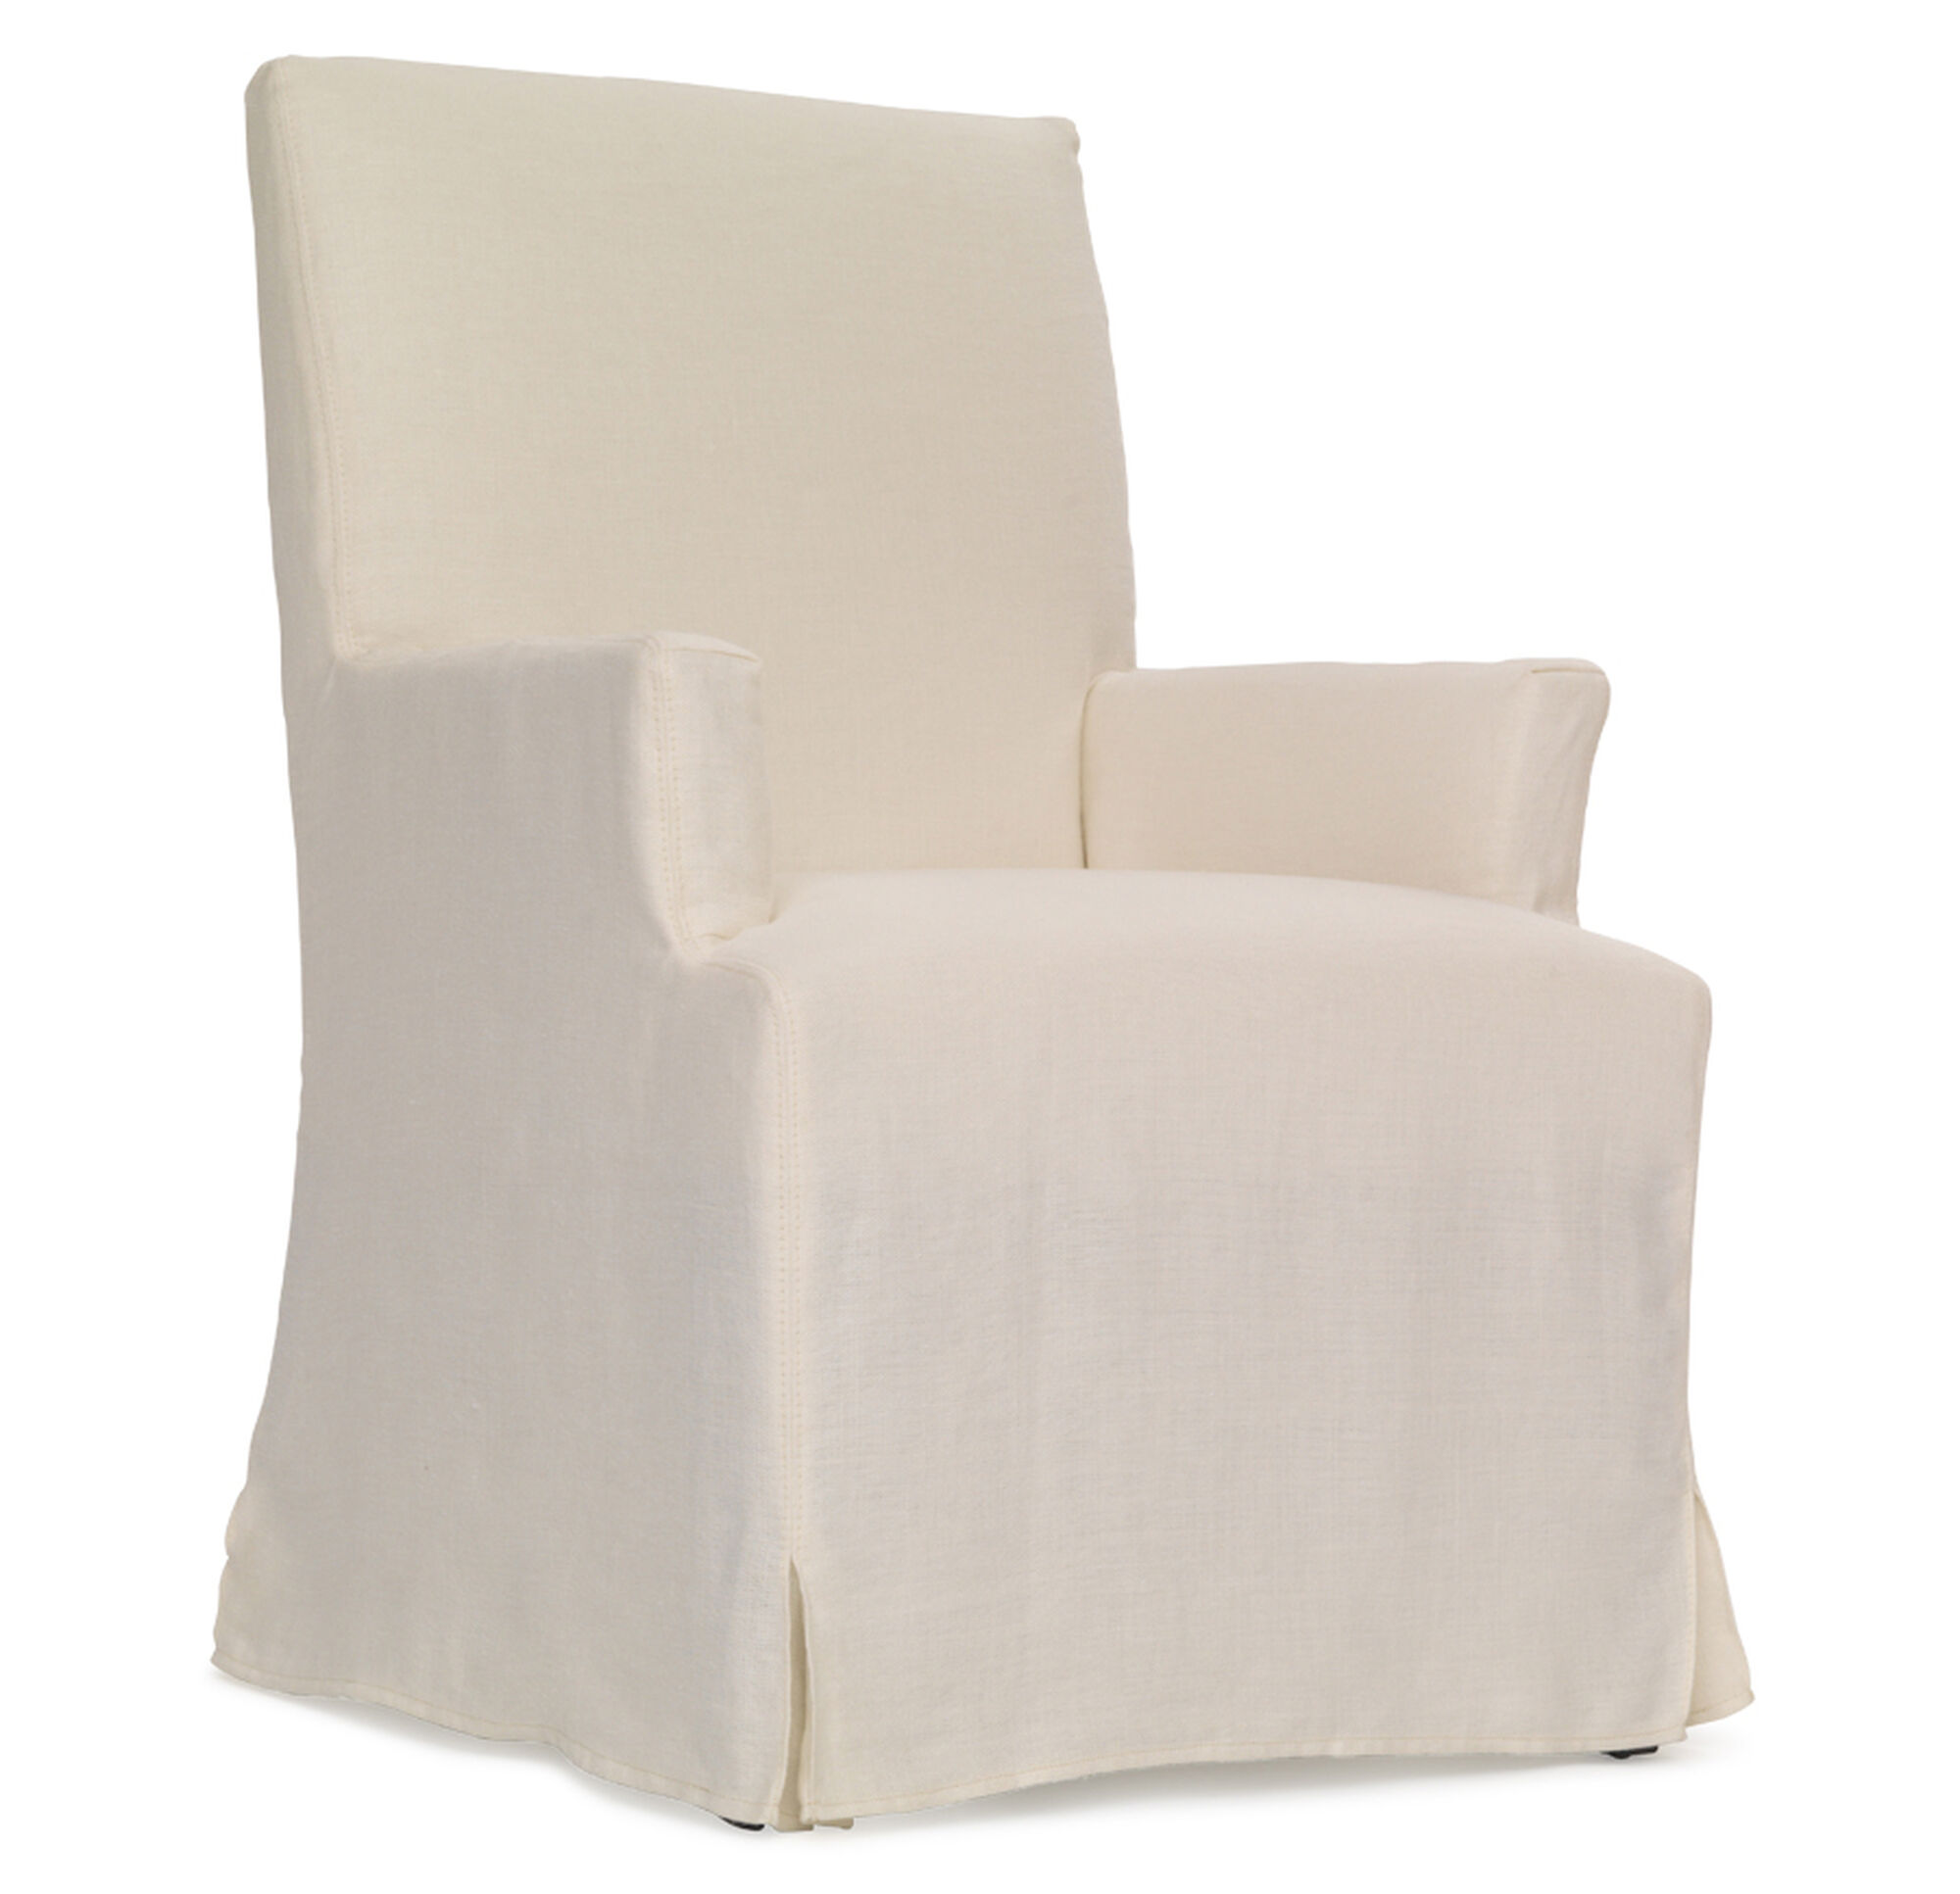 free today home arm slipcover chair shipping ruffled garden overstock product cotton